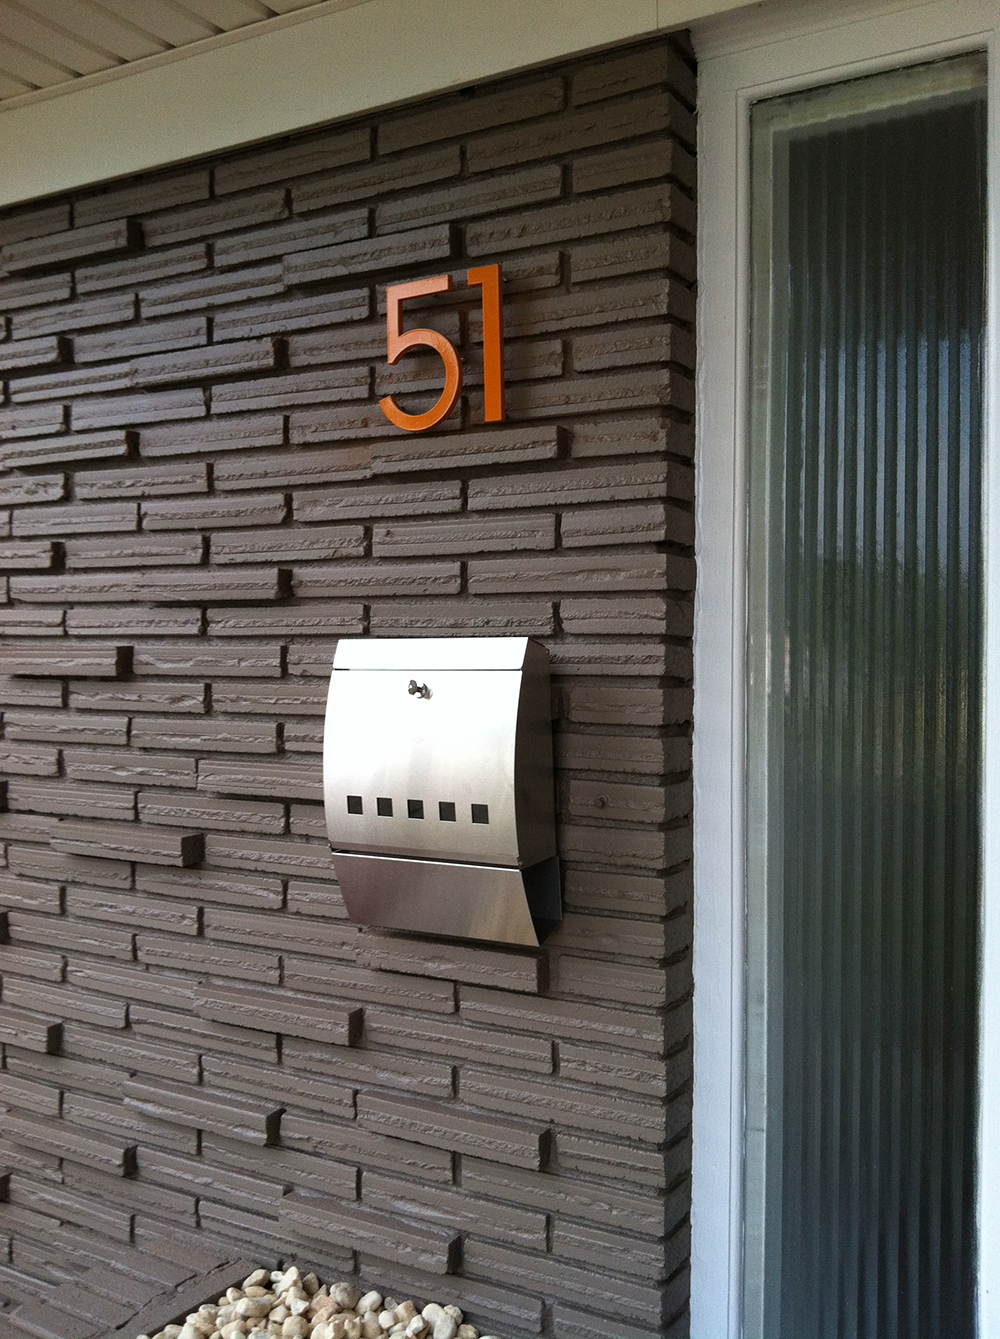 Modern house numbers in orange